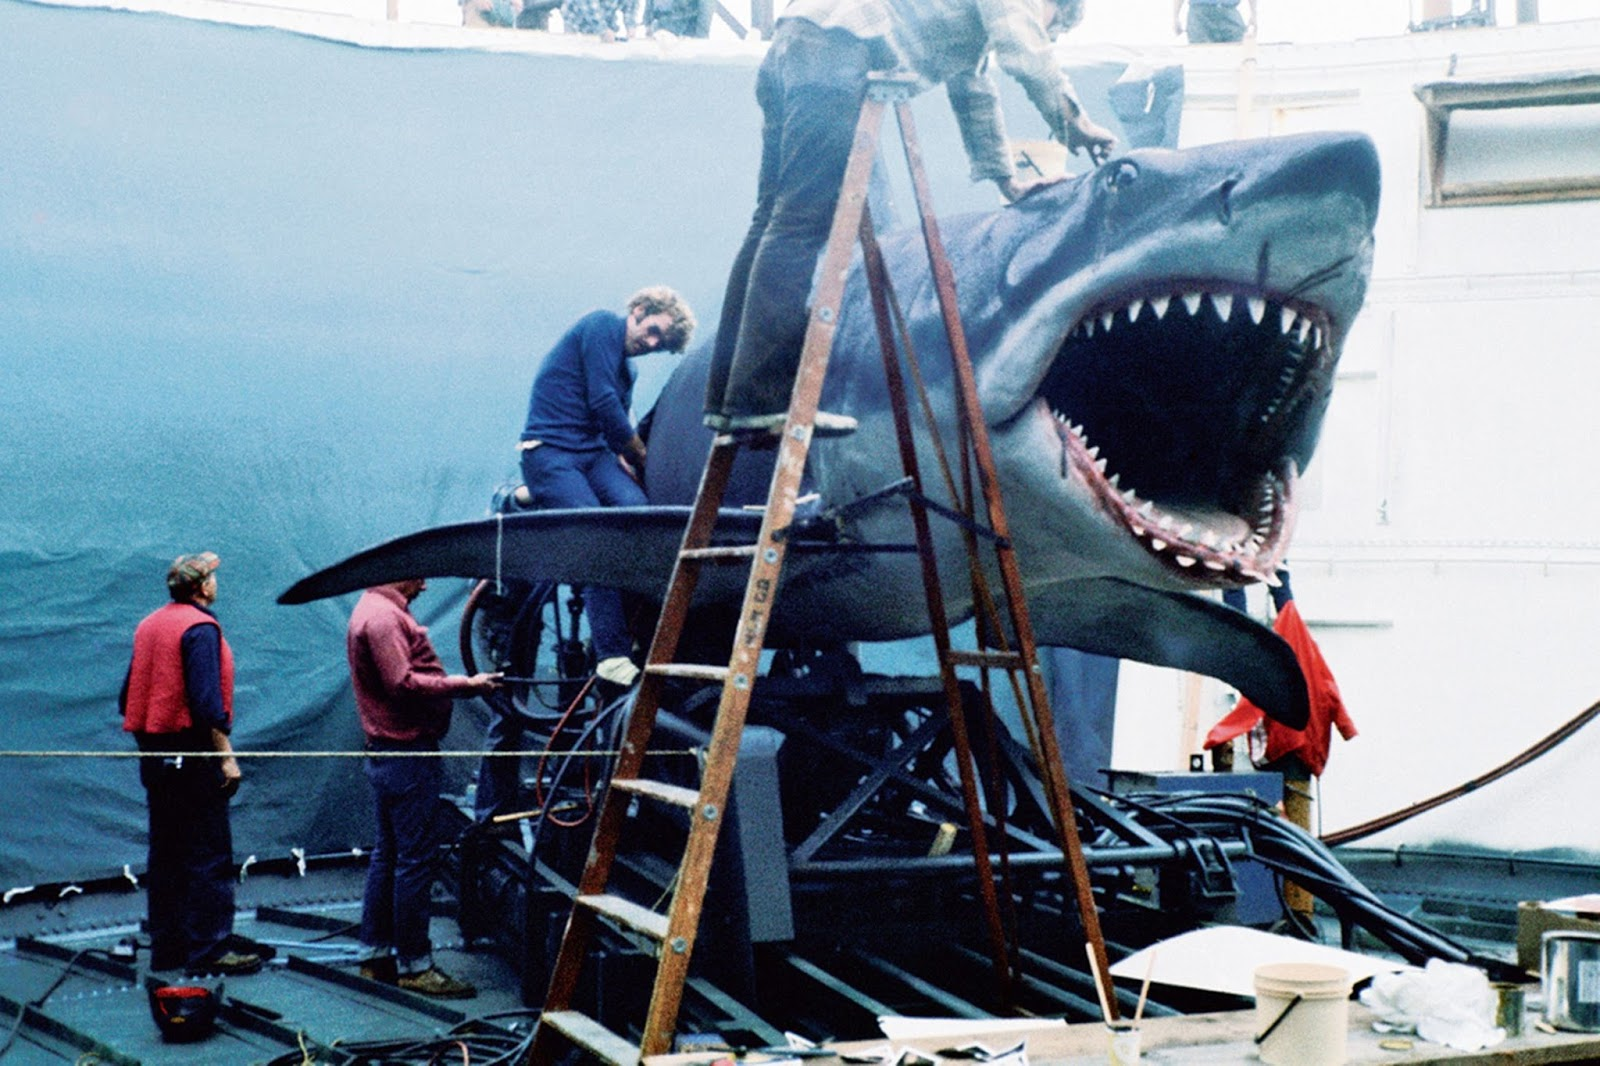 Jaws - Behind the scenes photos (1).jpg